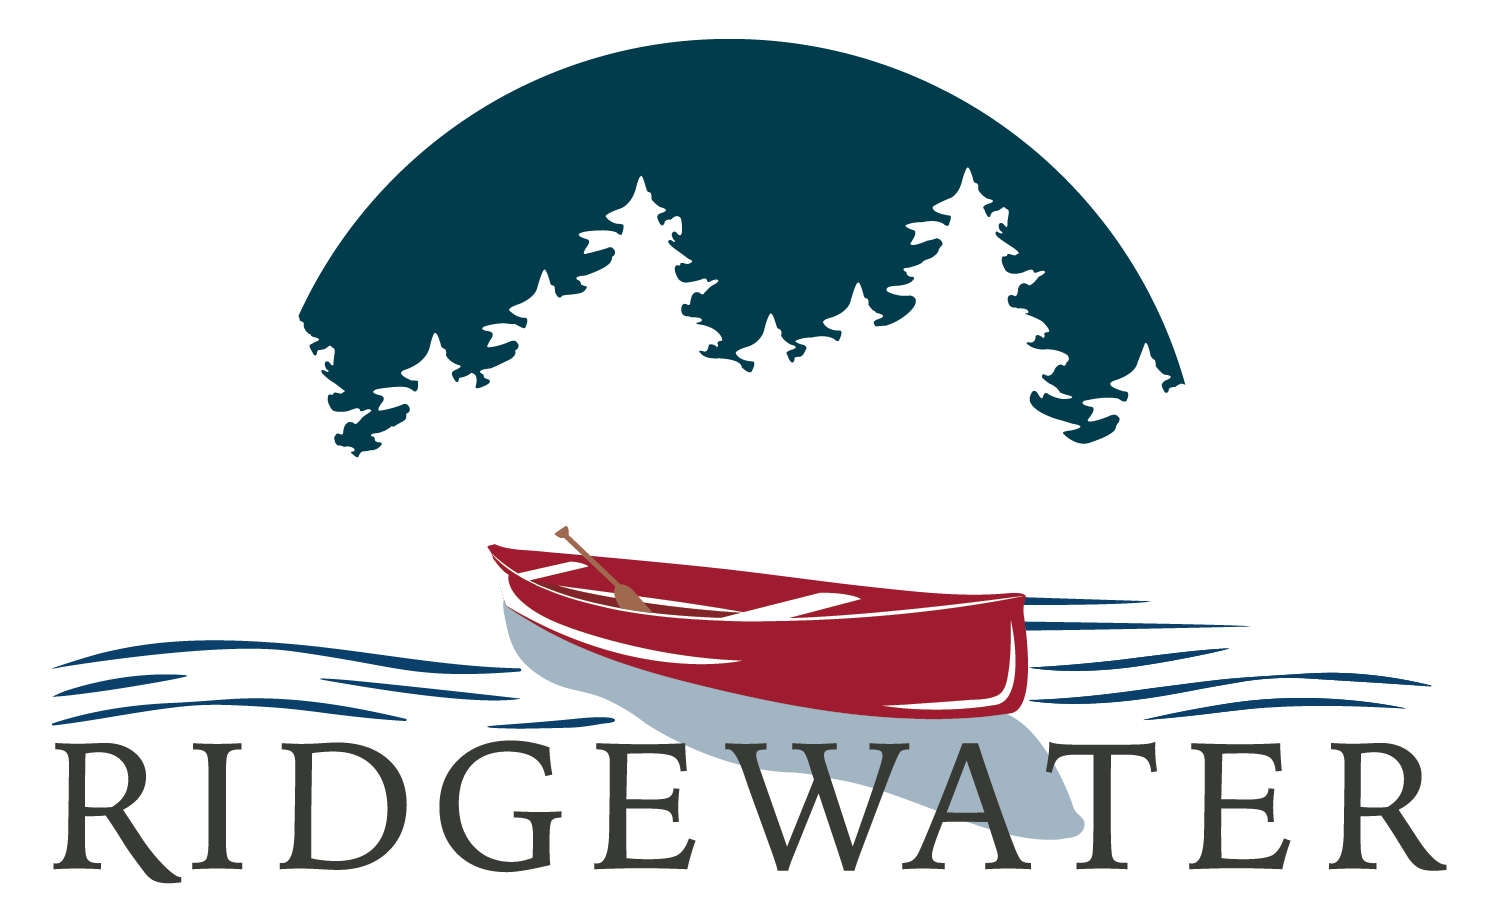 Ridgewater Marketing Logo in Charlotte North Carolina by Mattamy Homes